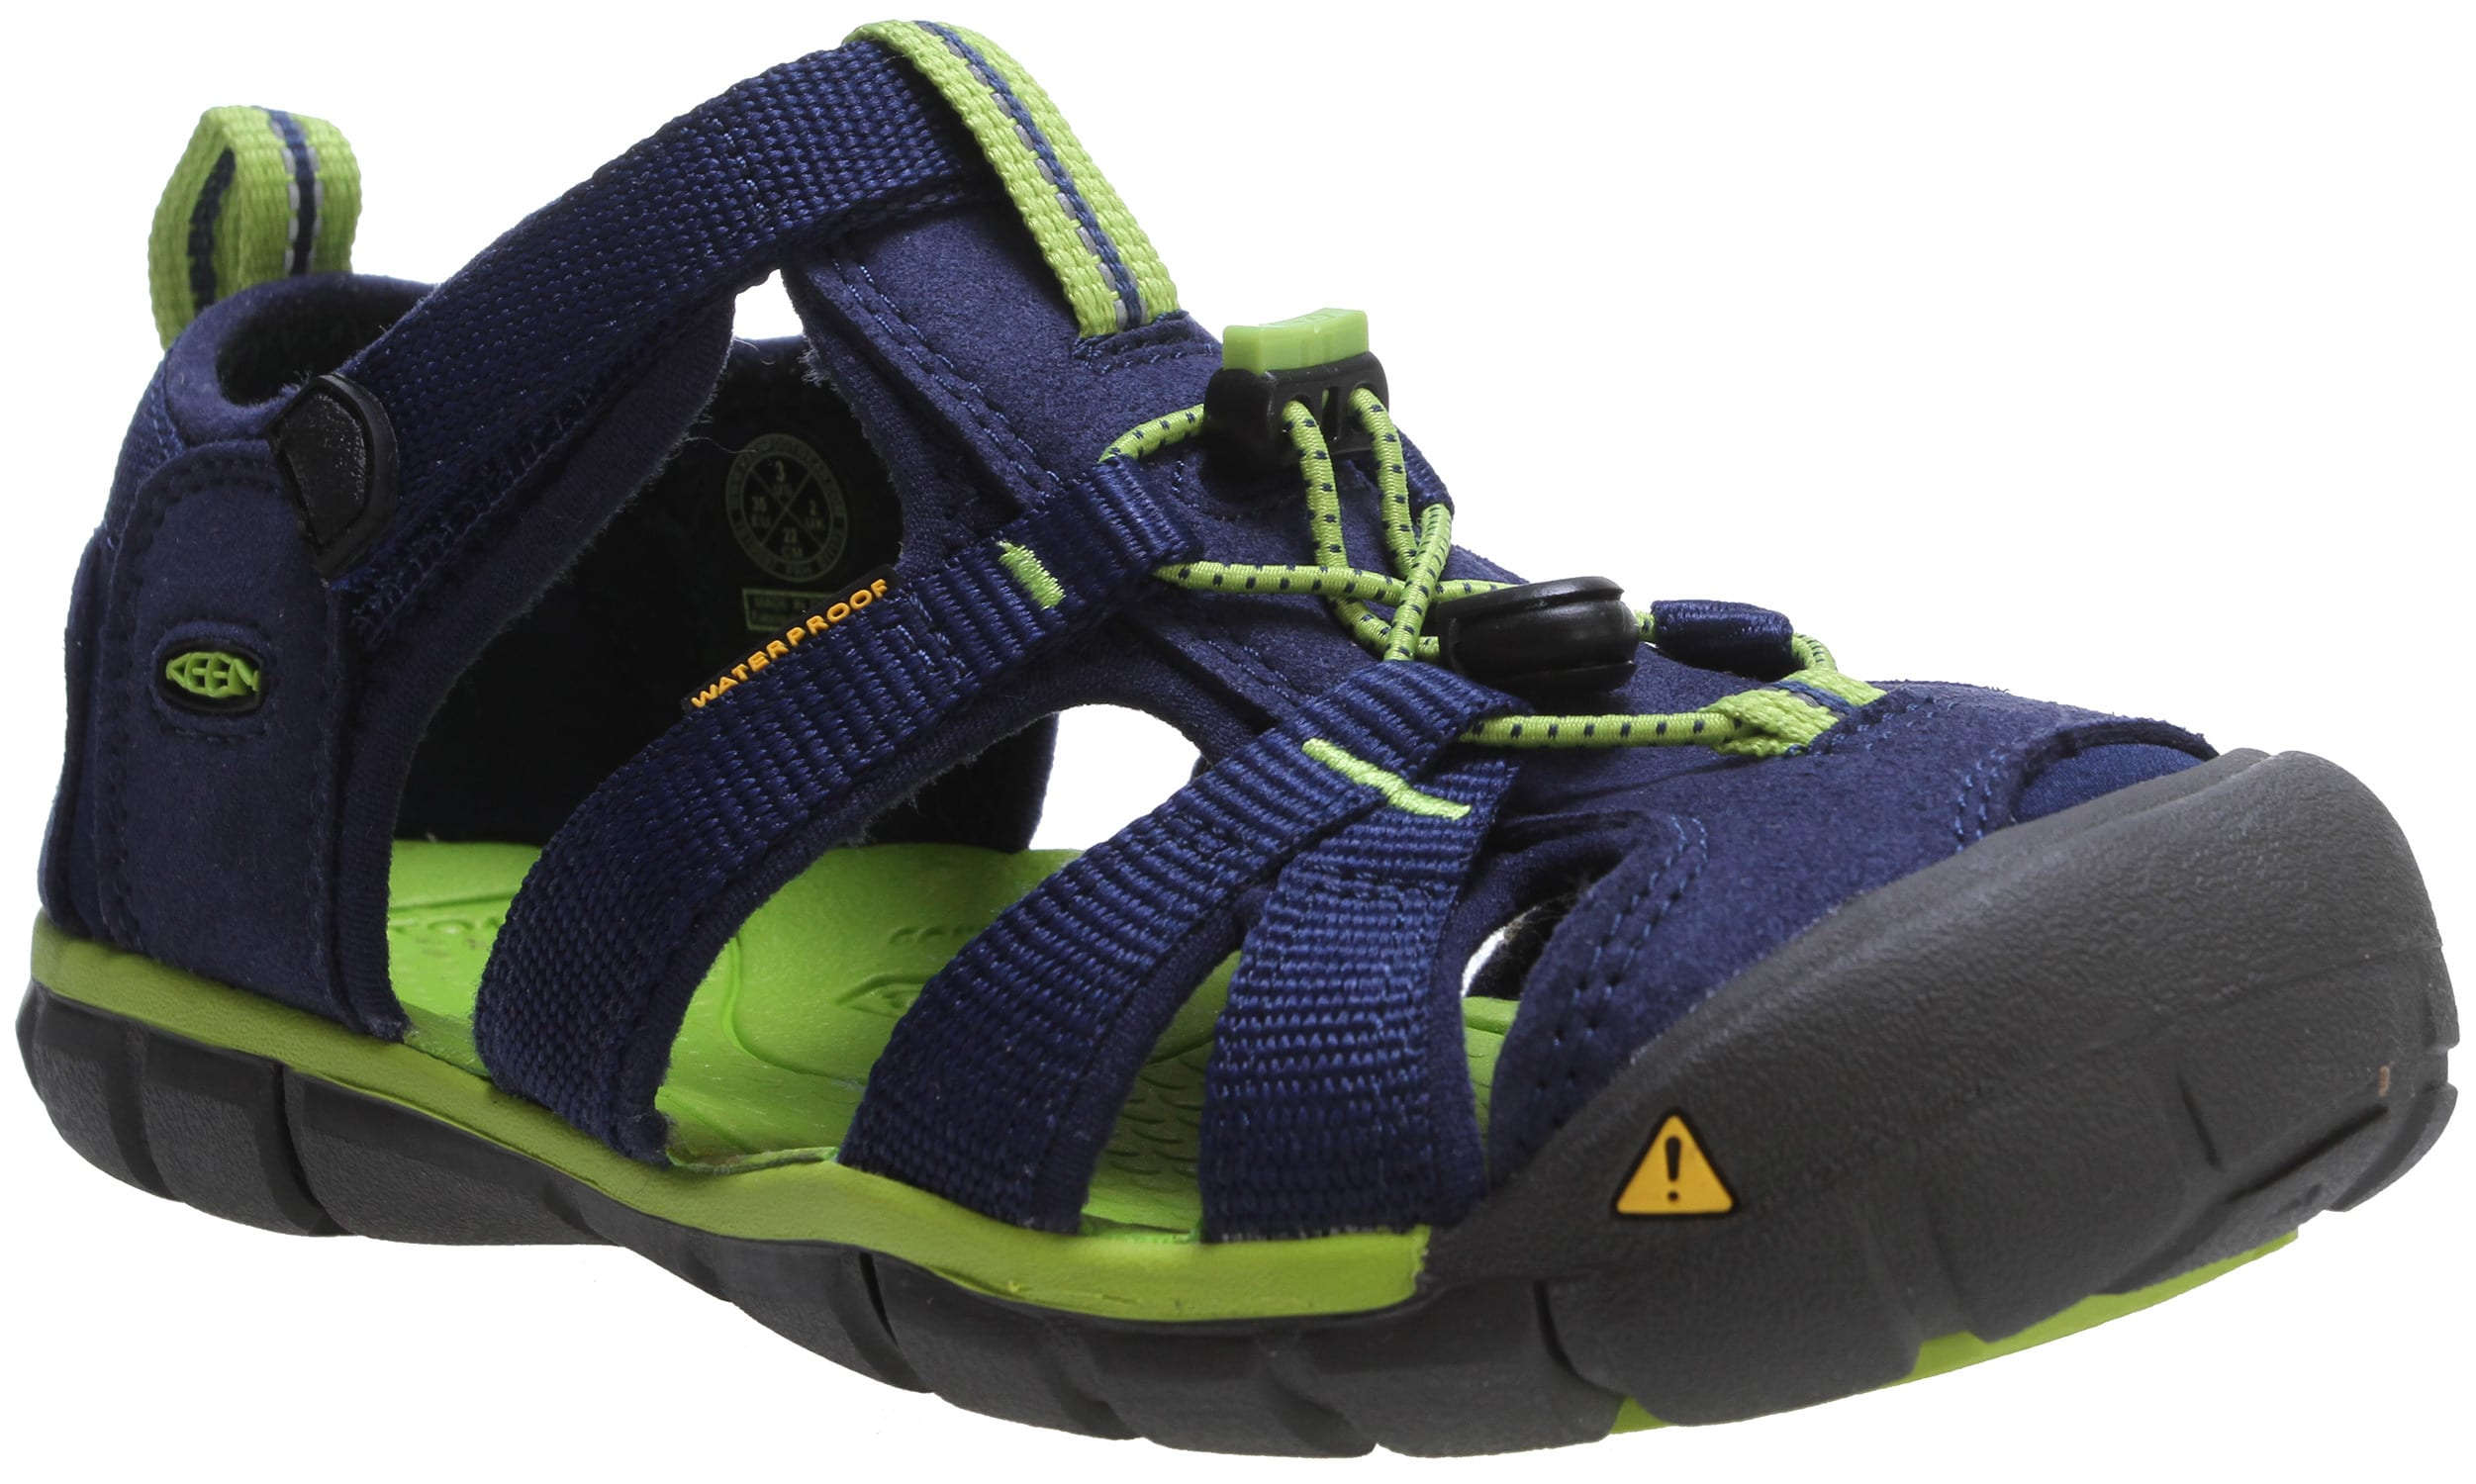 Sale Keen Seacamp II CNX Sandals Kids Youth up to off